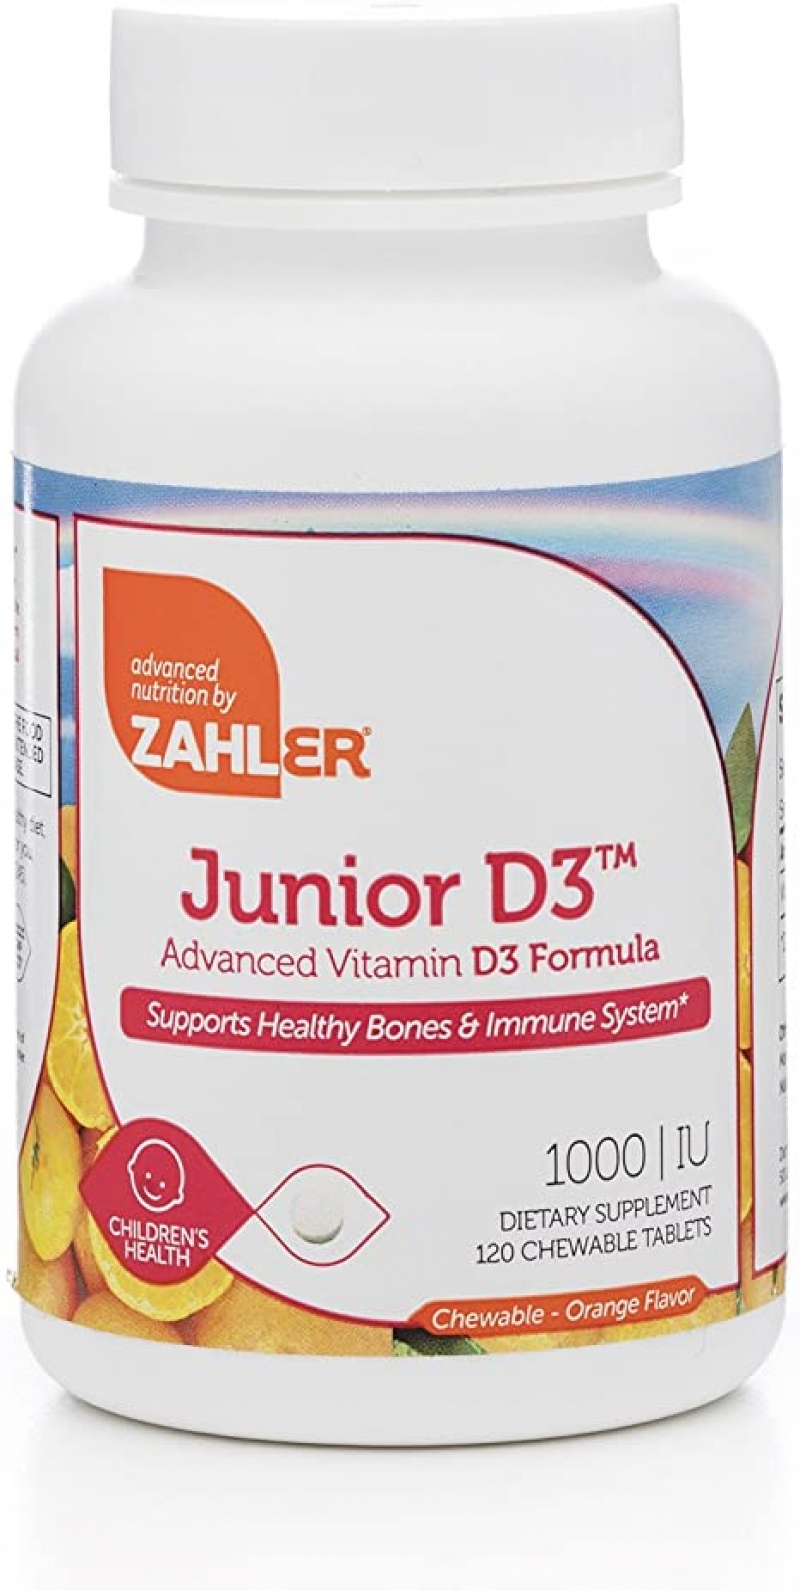 ihocon: Zahler Junior D3 Chewable 1000IU, 1000 IU, 120 Chewable Tablets 兒童嚼片